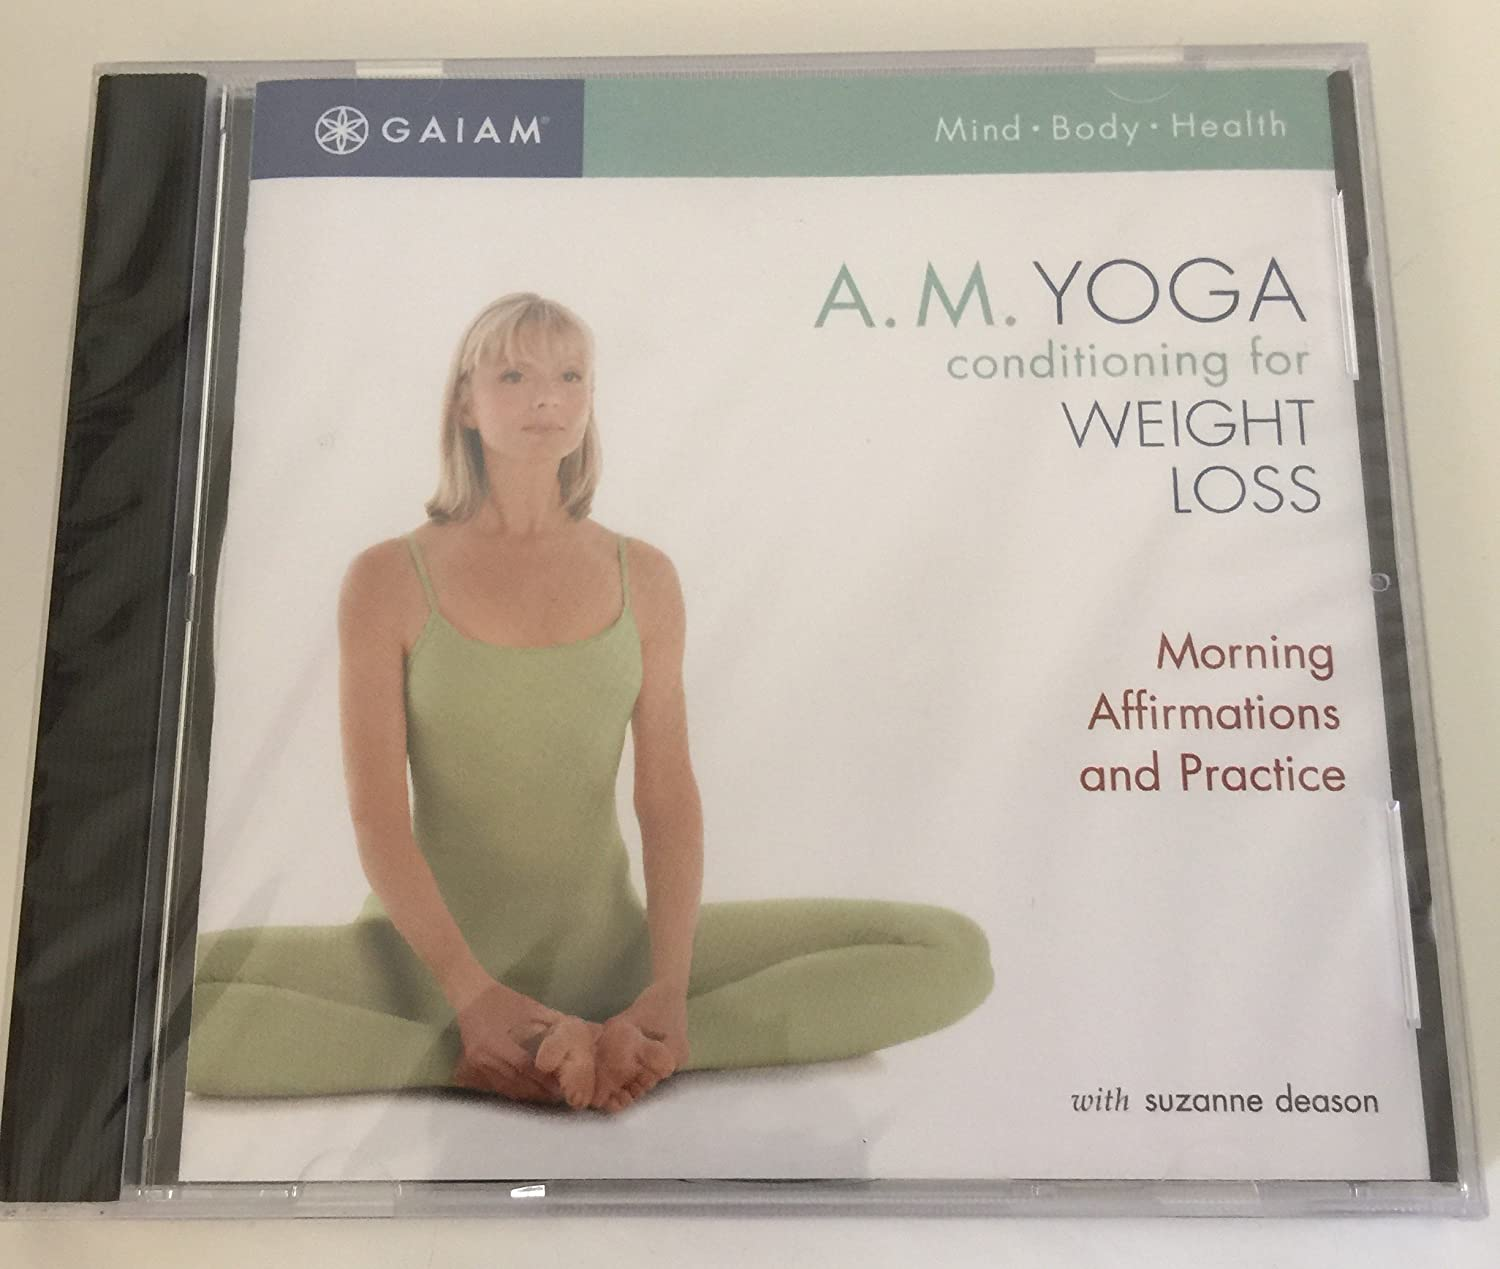 AM Yoga Conditioning for Weight Loss